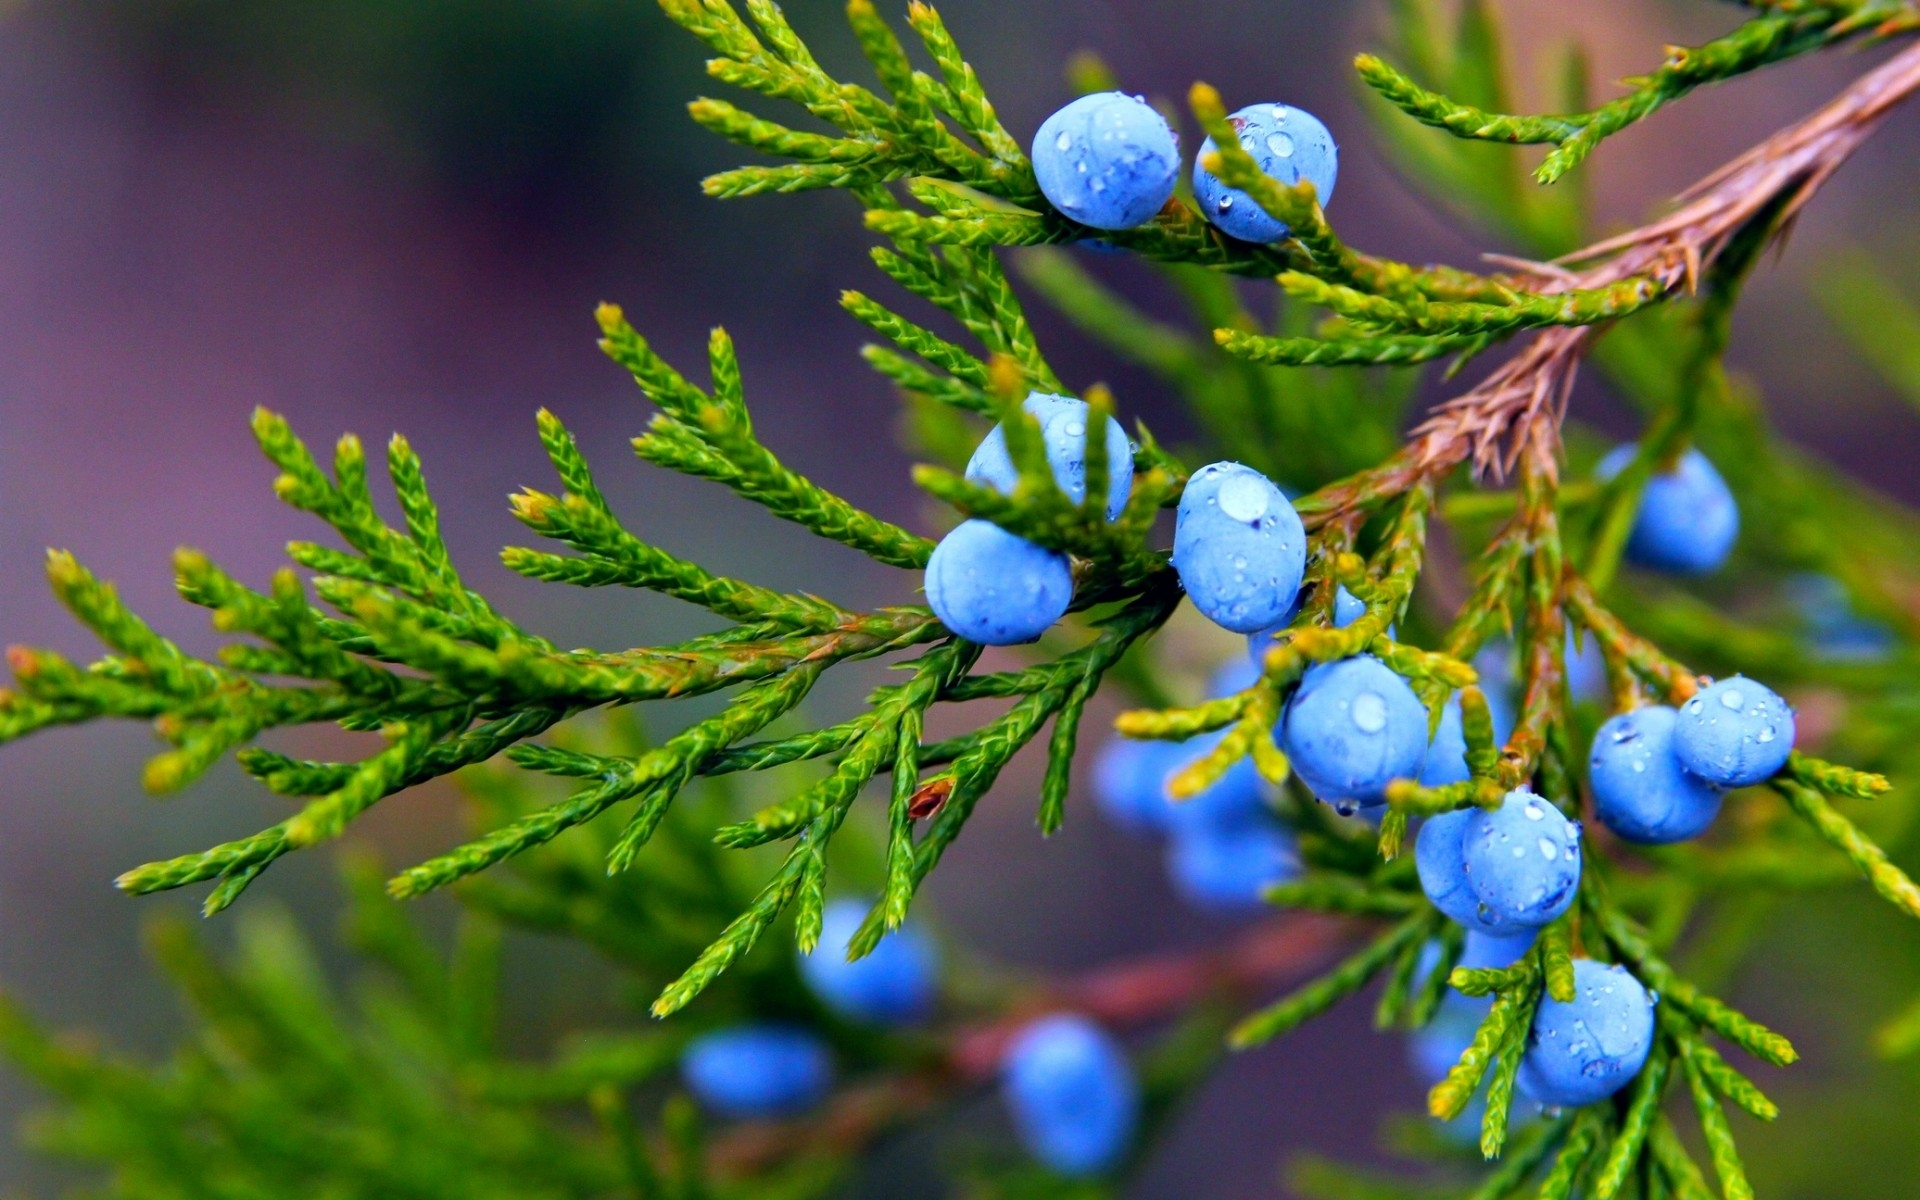 juniper-fruits-wallpaper-for-1920x1200-widescreen-11-44